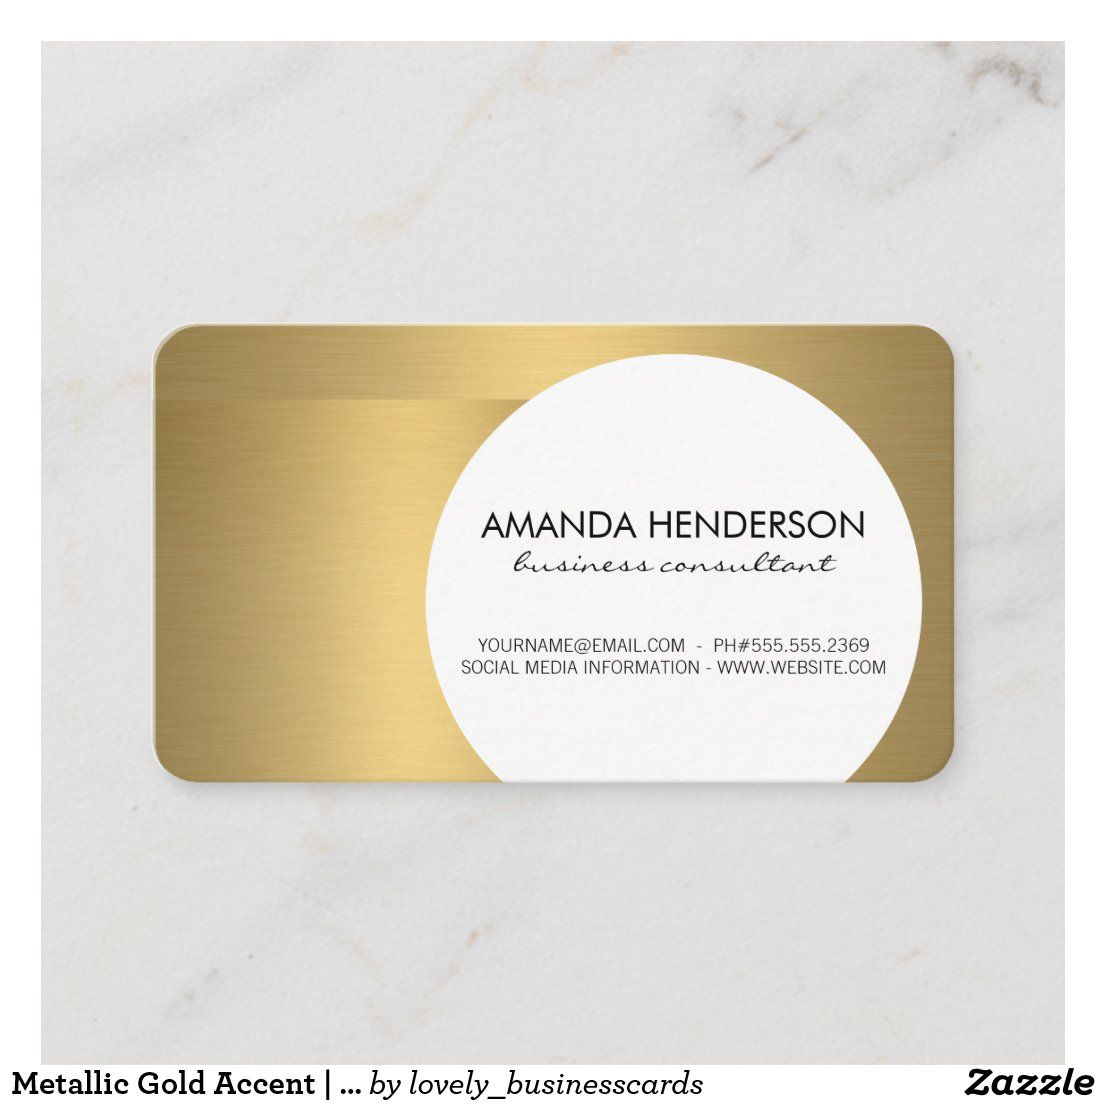 Metallic Gold Accent Metallic Brushed Business Card Zazzle Com In 2020 Interior Designer Business Card Professional Business Cards Printing Double Sided